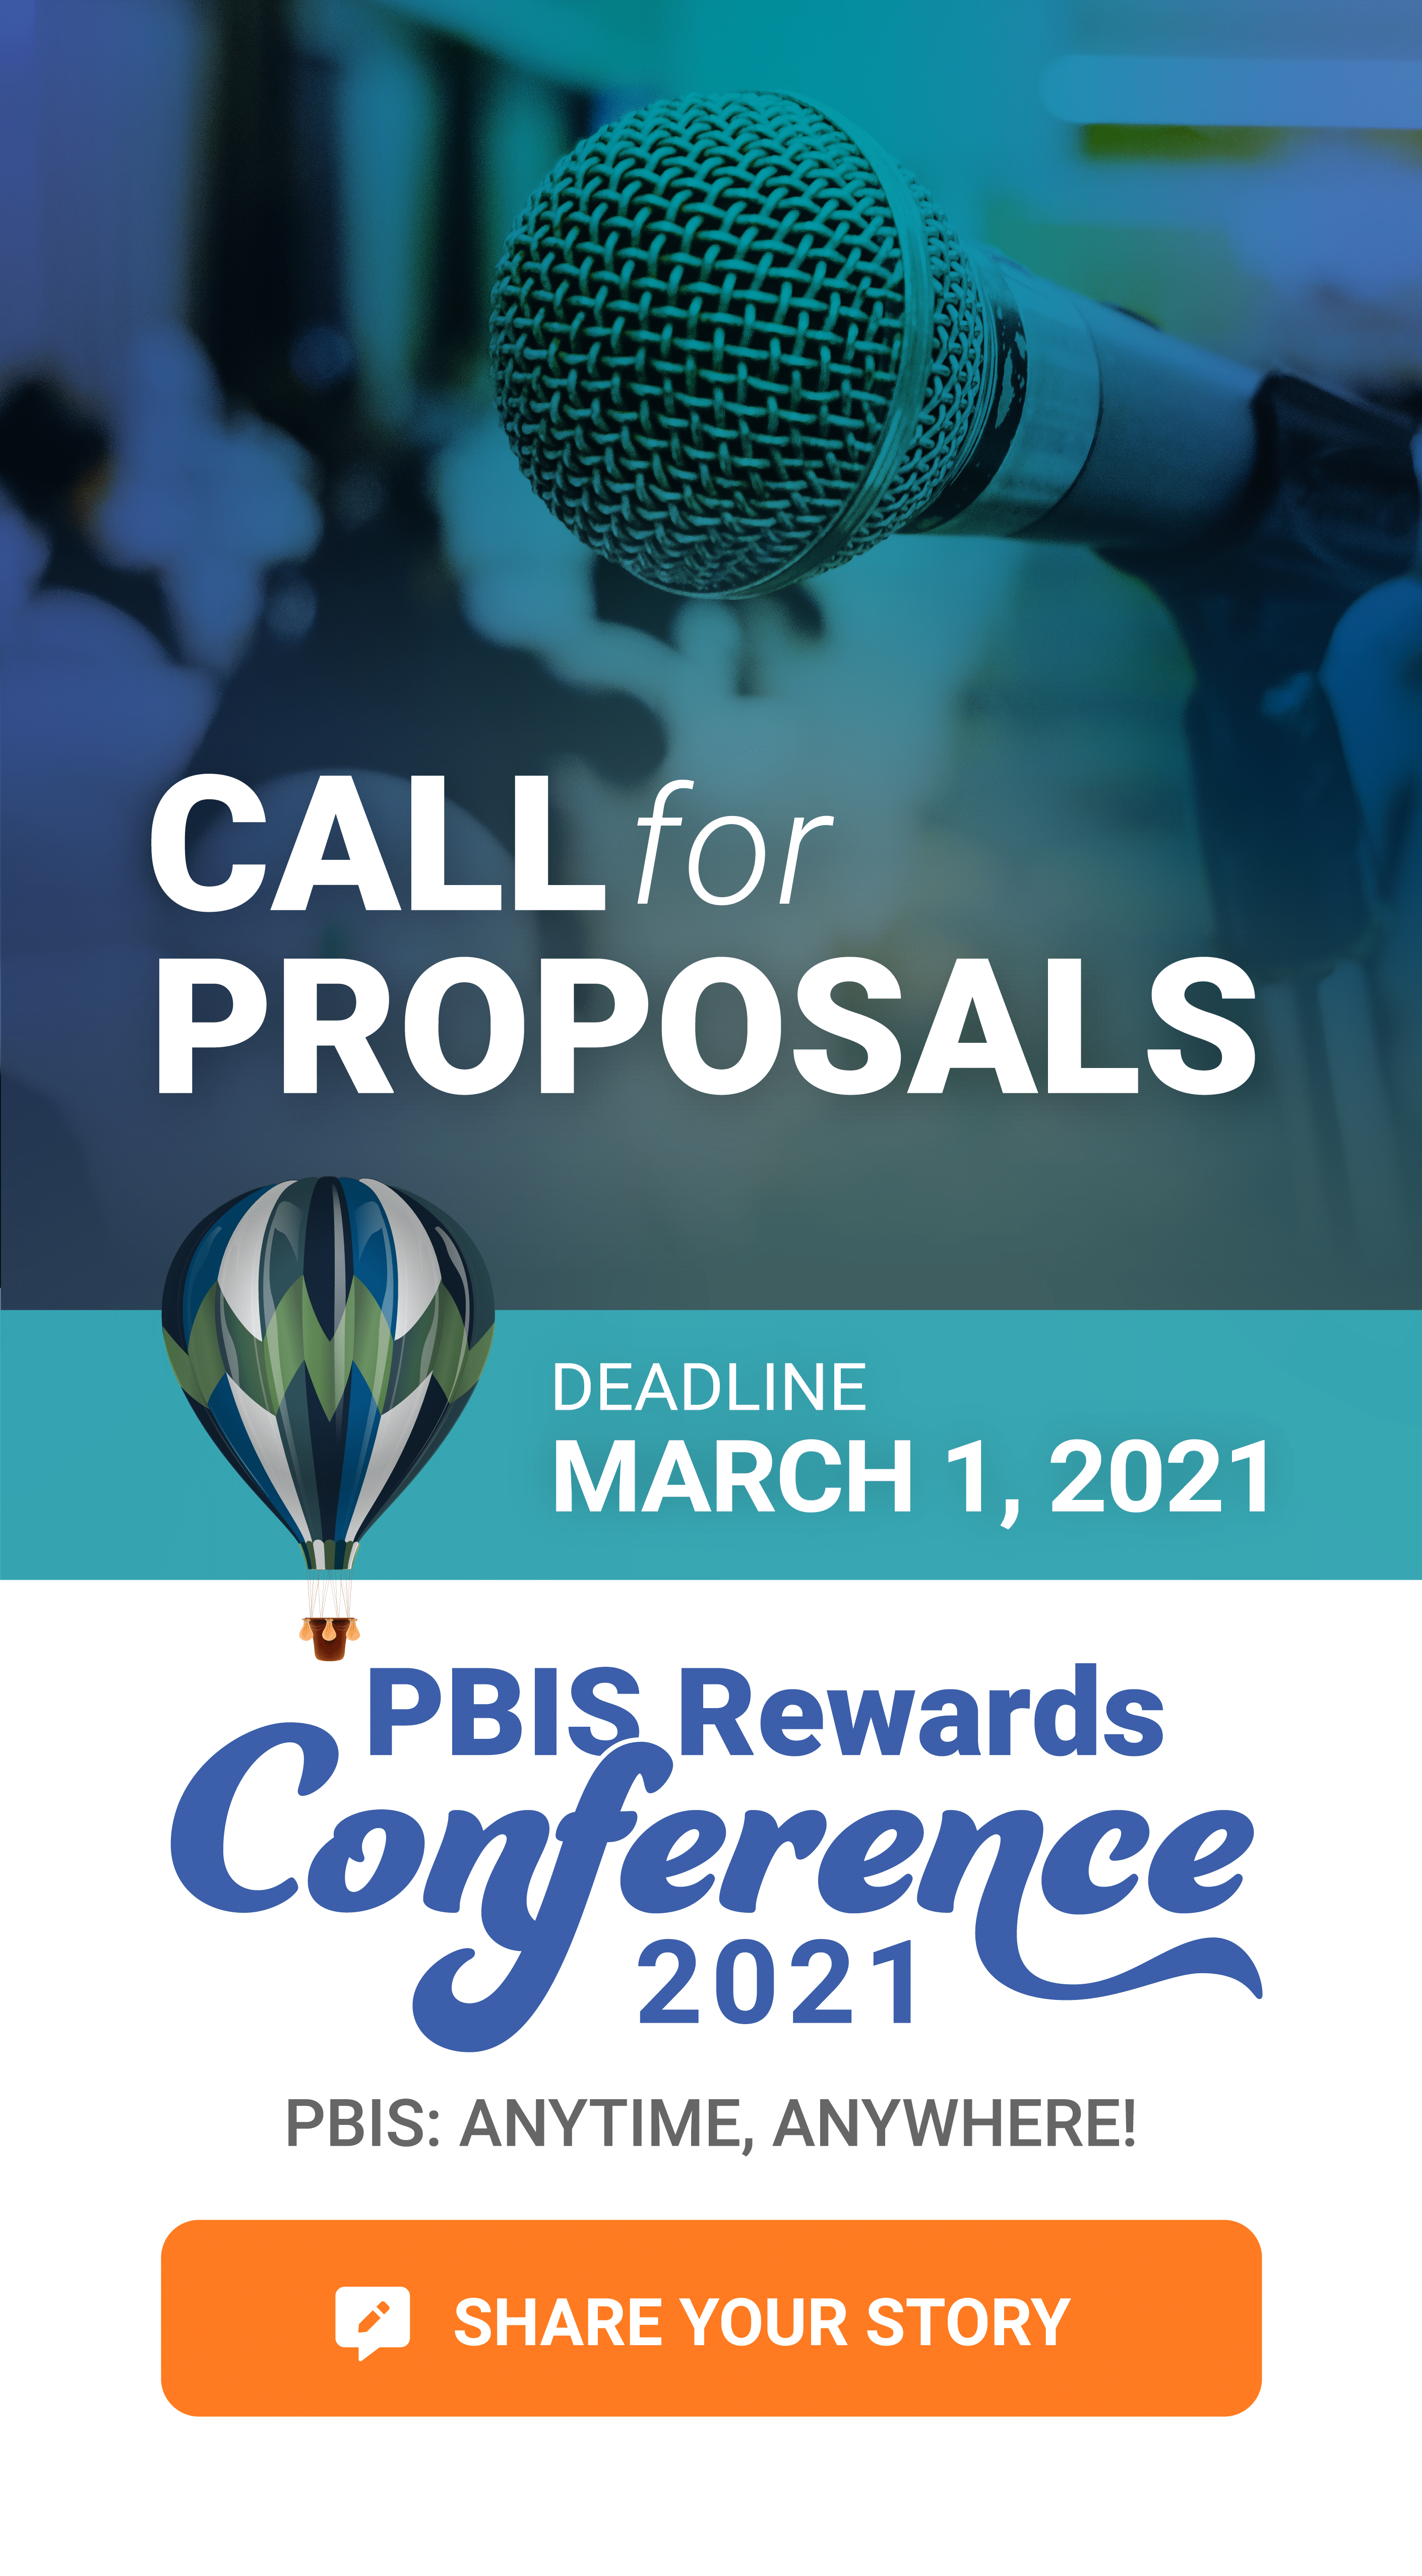 PBIS Rewards Conference 2021 Call for Proposals